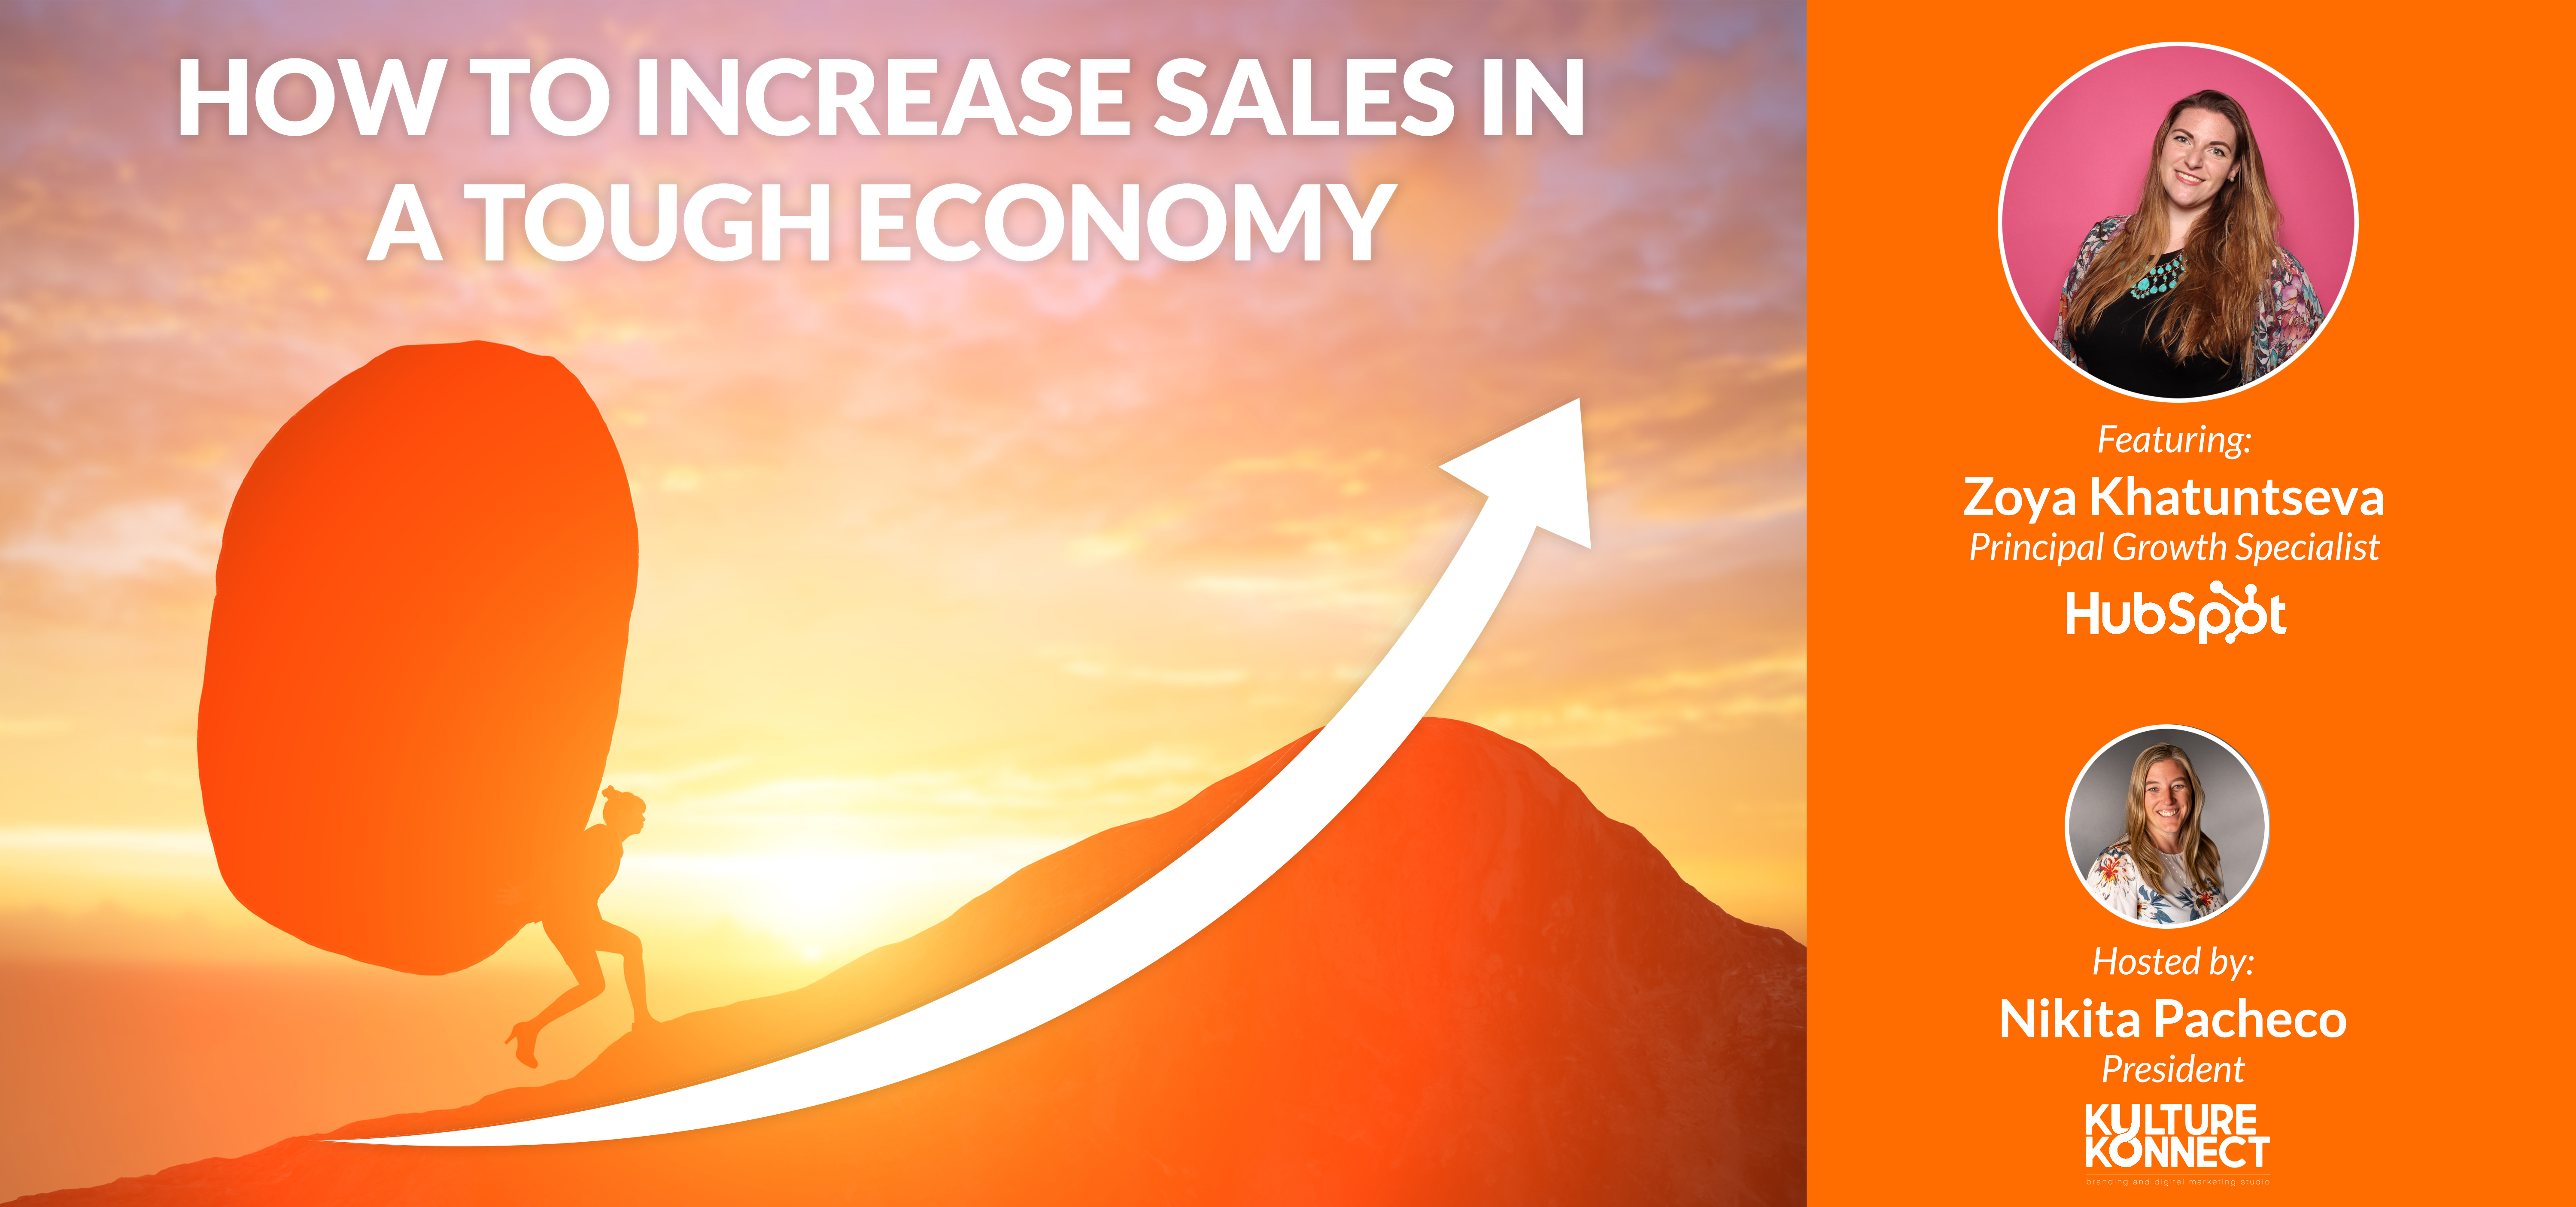 How To Increase Sales In A Tough Economy